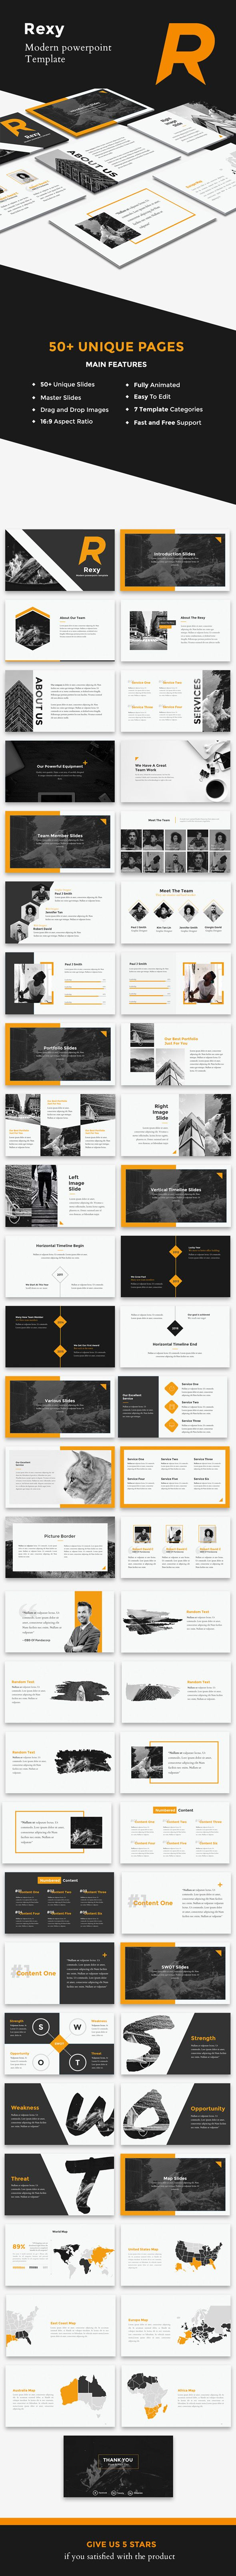 Rexy - Modern PowerPoint Template - Creative PowerPoint Templates